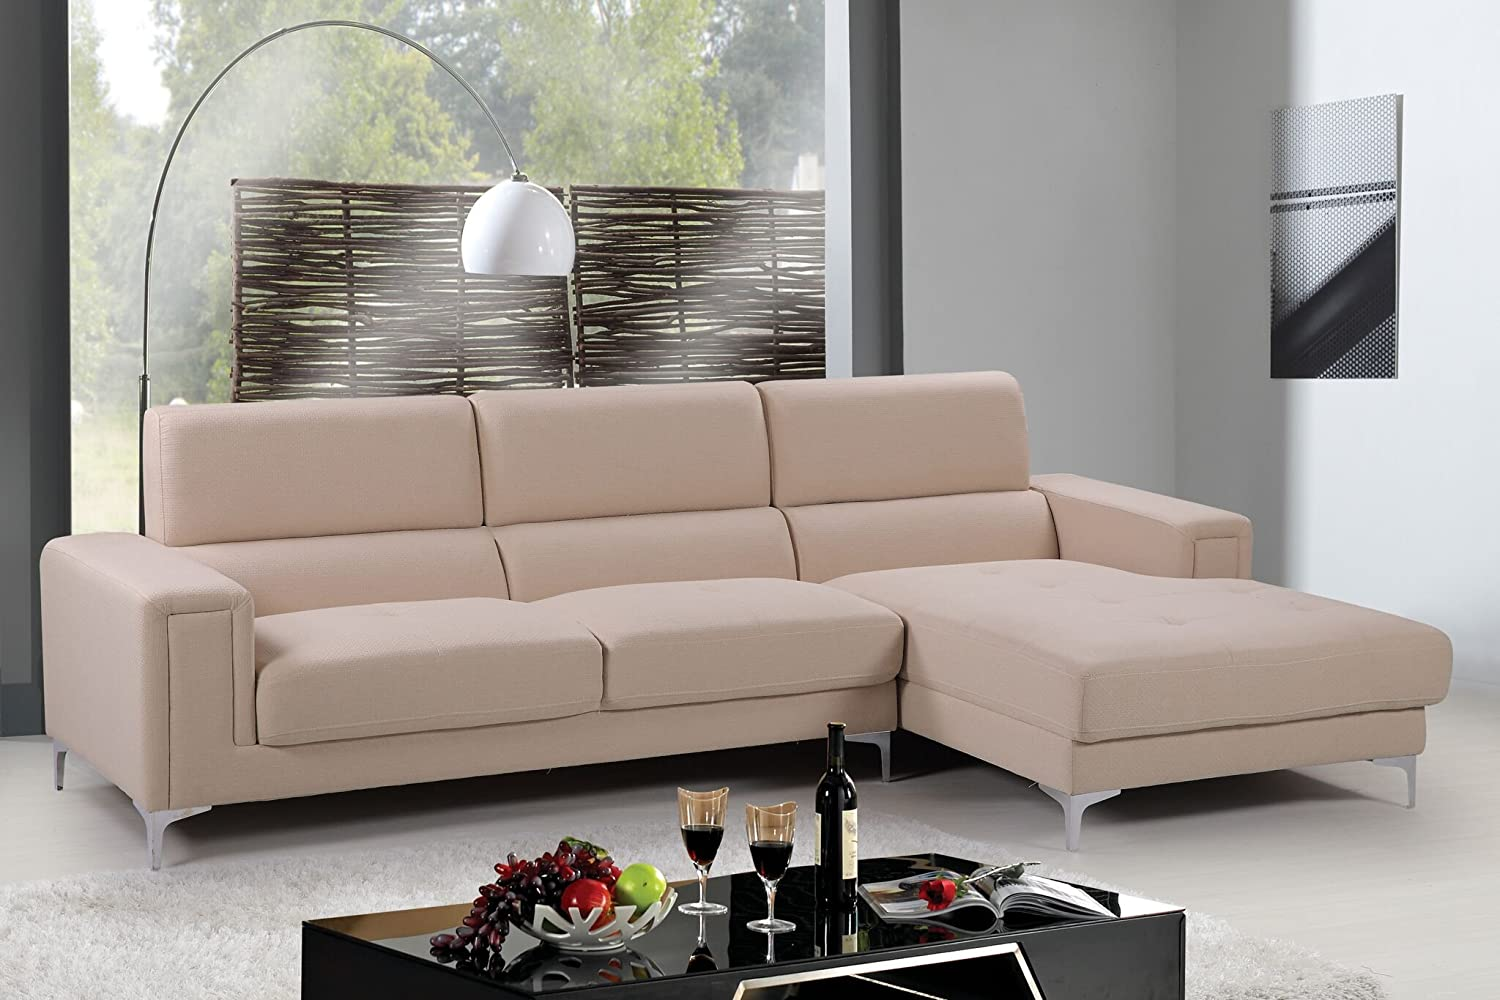 Amazon com container furniture direct sydney collection mid century upholstered linen fabric sectional sofa right facing chaise cream beige kitchen